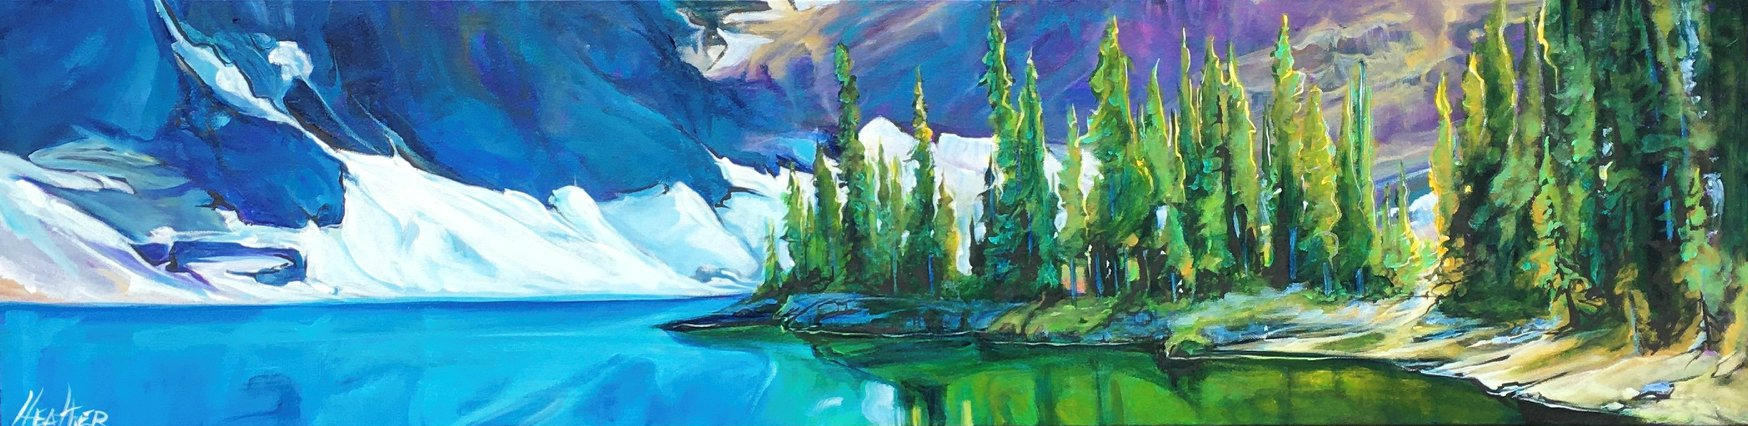 Floe Lake Illumination, acrylic landscape painting by Heather Pant | Effusion Art Gallery + Cast Glass Studio, Invermere BC